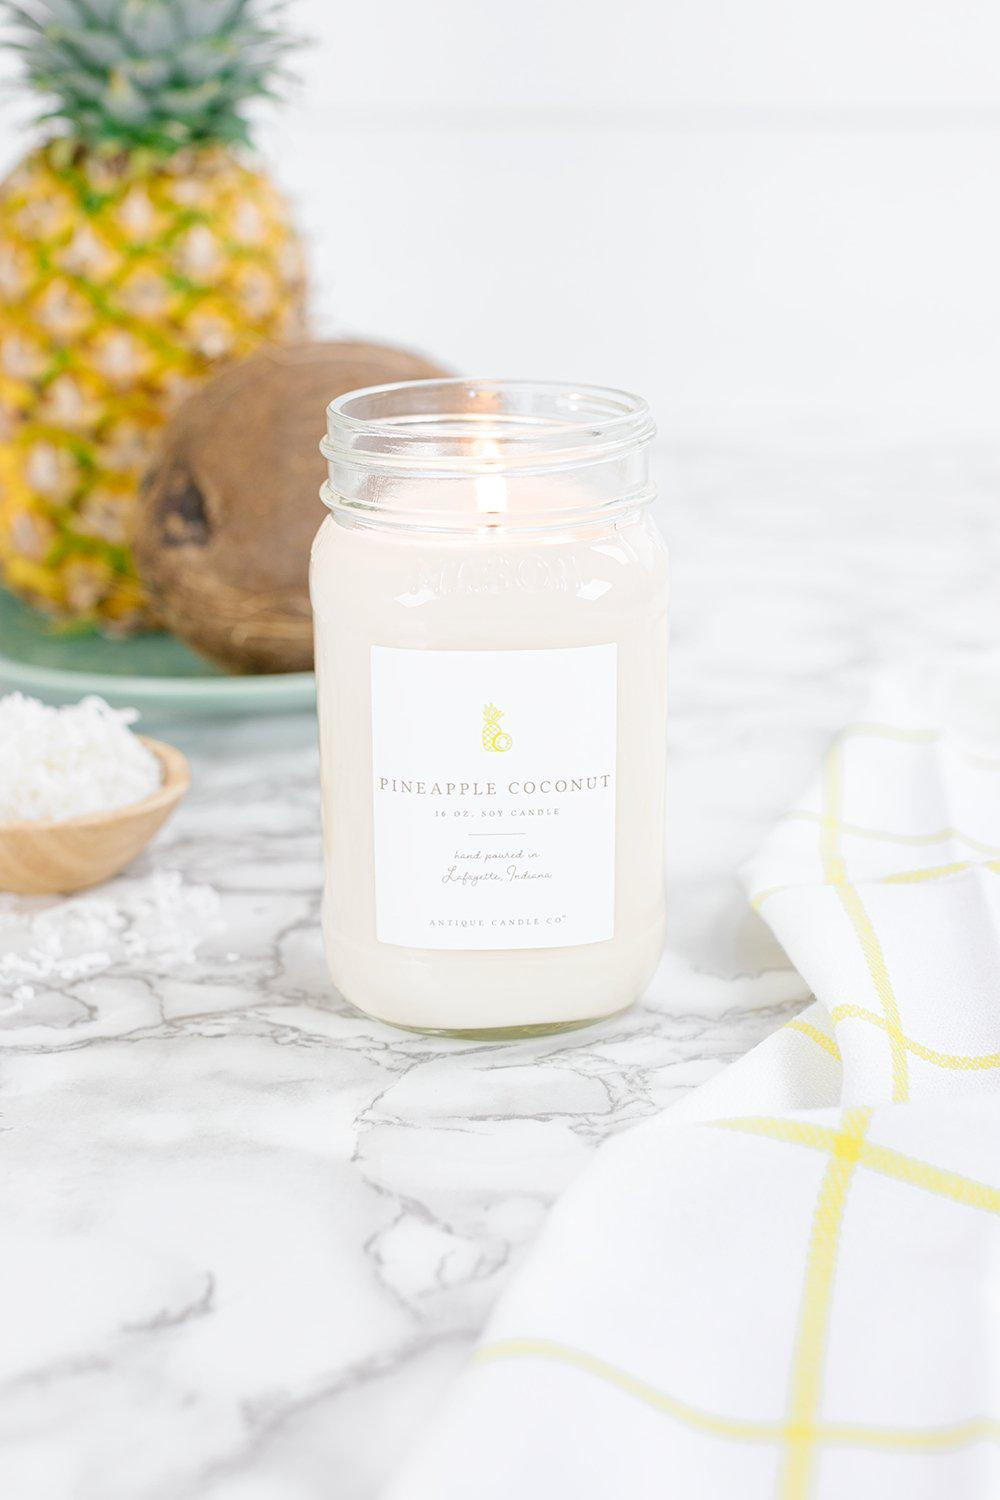 Pineapple Coconut Candle (16 oz.) - Little Red Barn Door